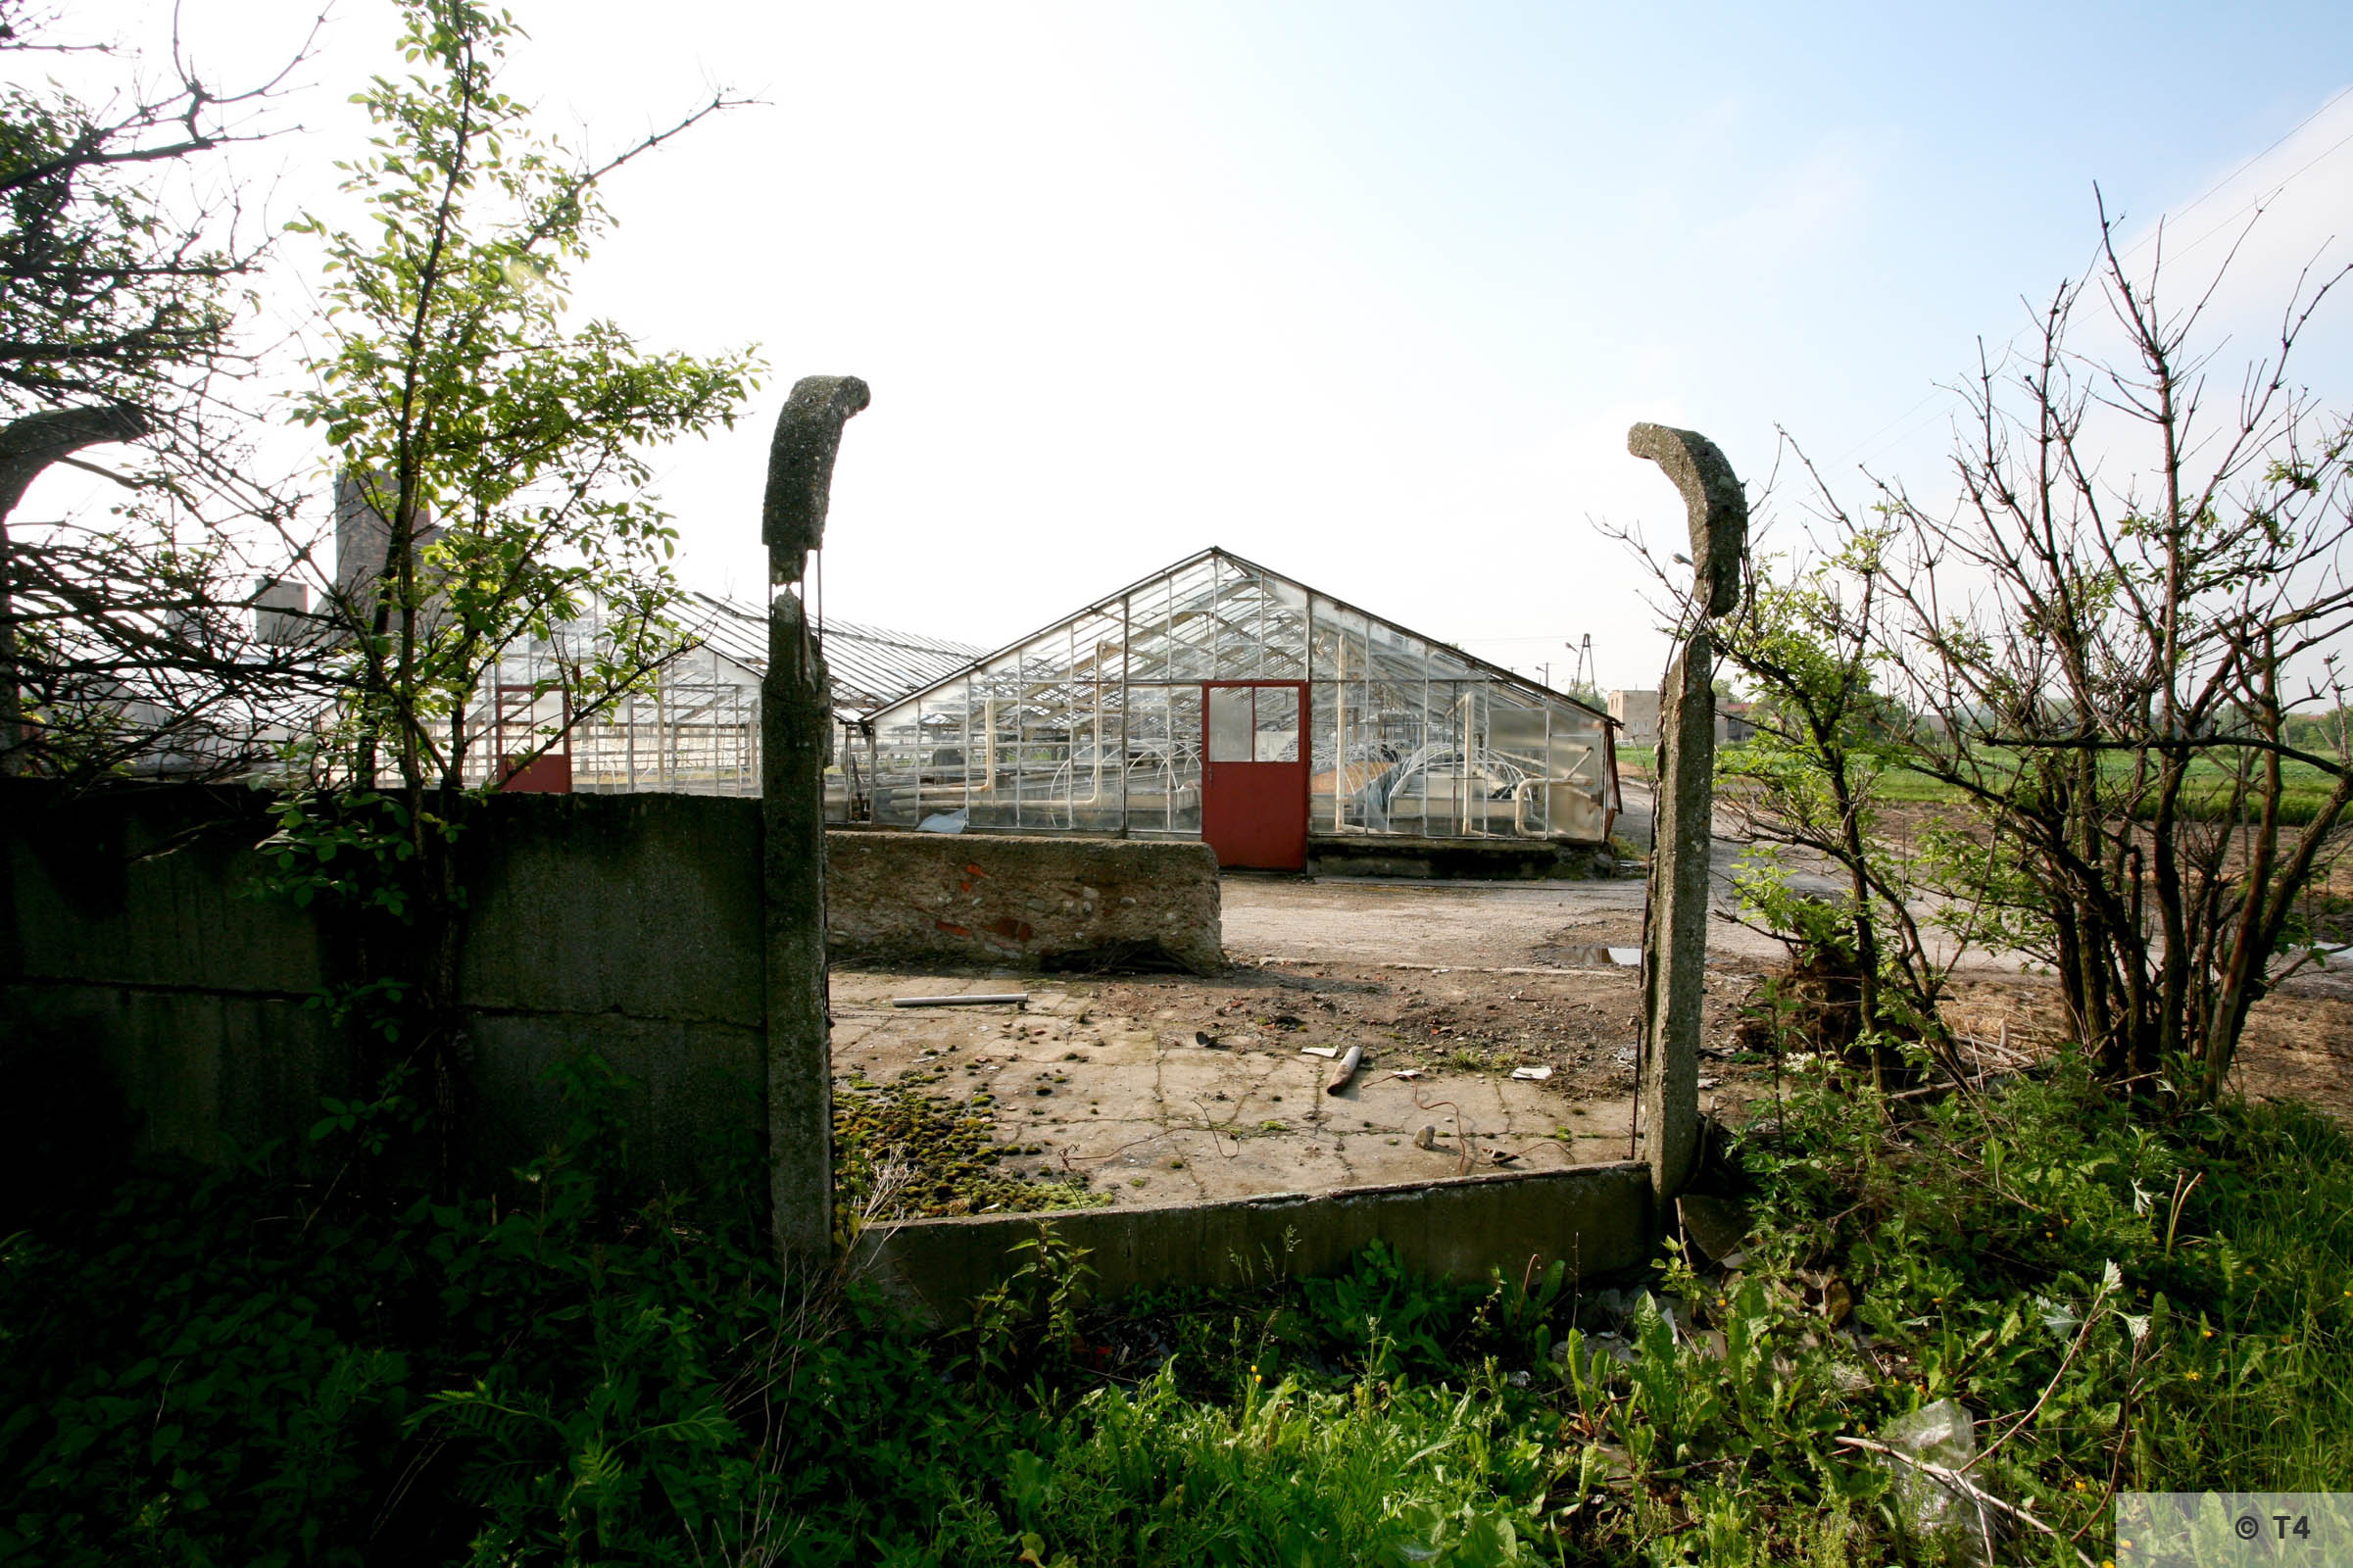 New greenhouses. Remnants of fence posts. 2006 T4 5150